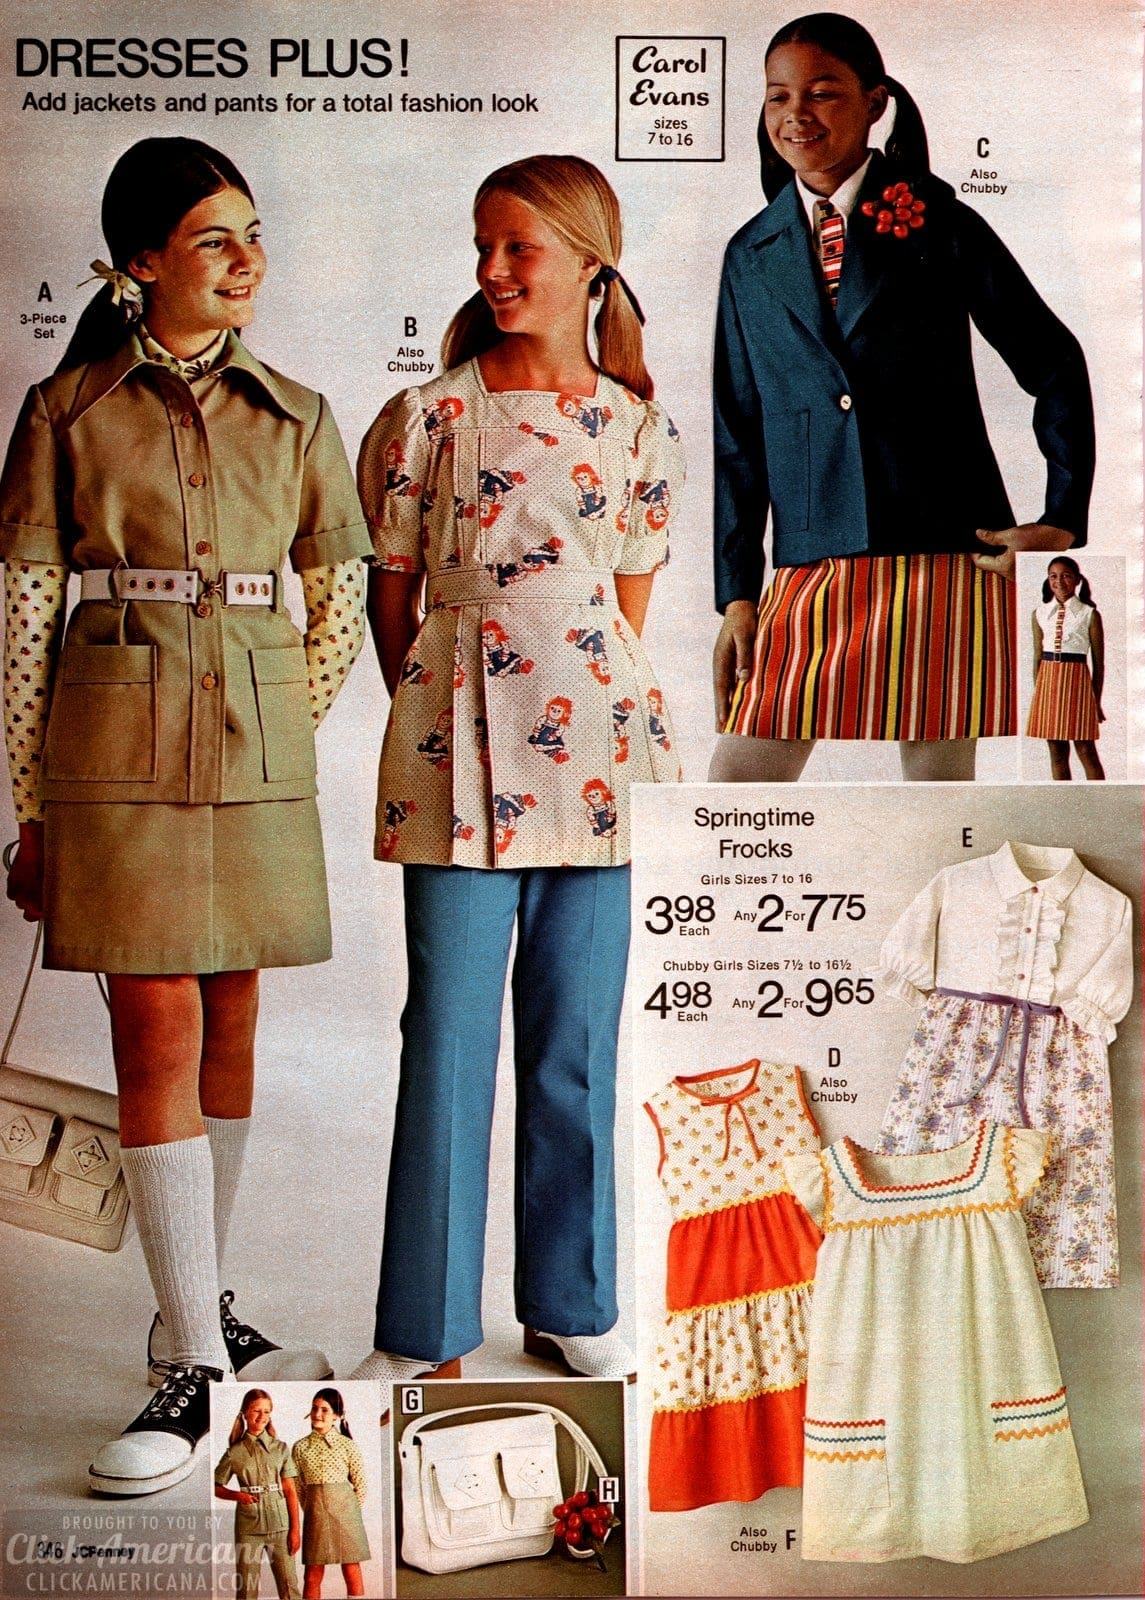 Springtime frocks plus dresses and jackets or pants for girls from 1973